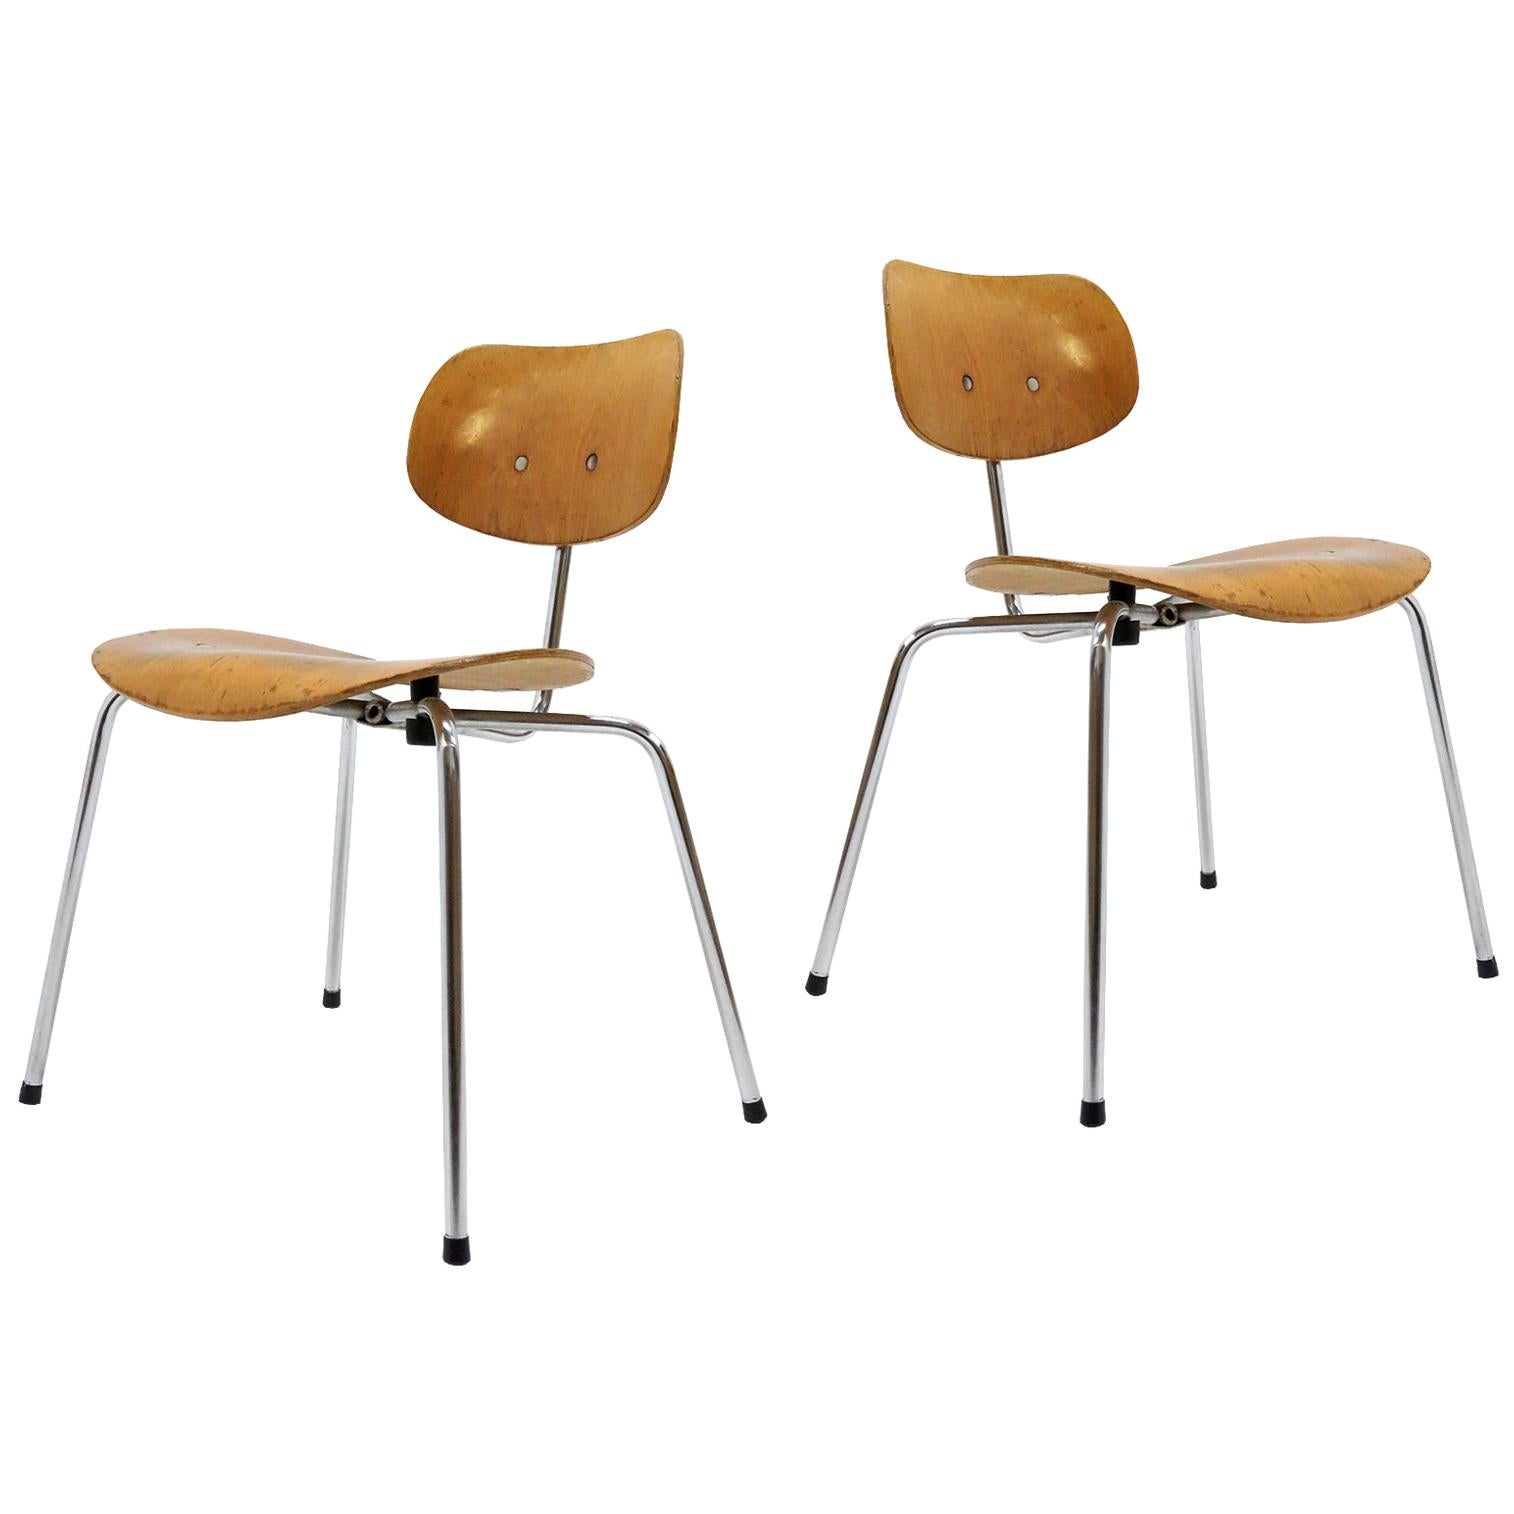 Side Chairs by Egon Eiermann for Wilde & Spieth